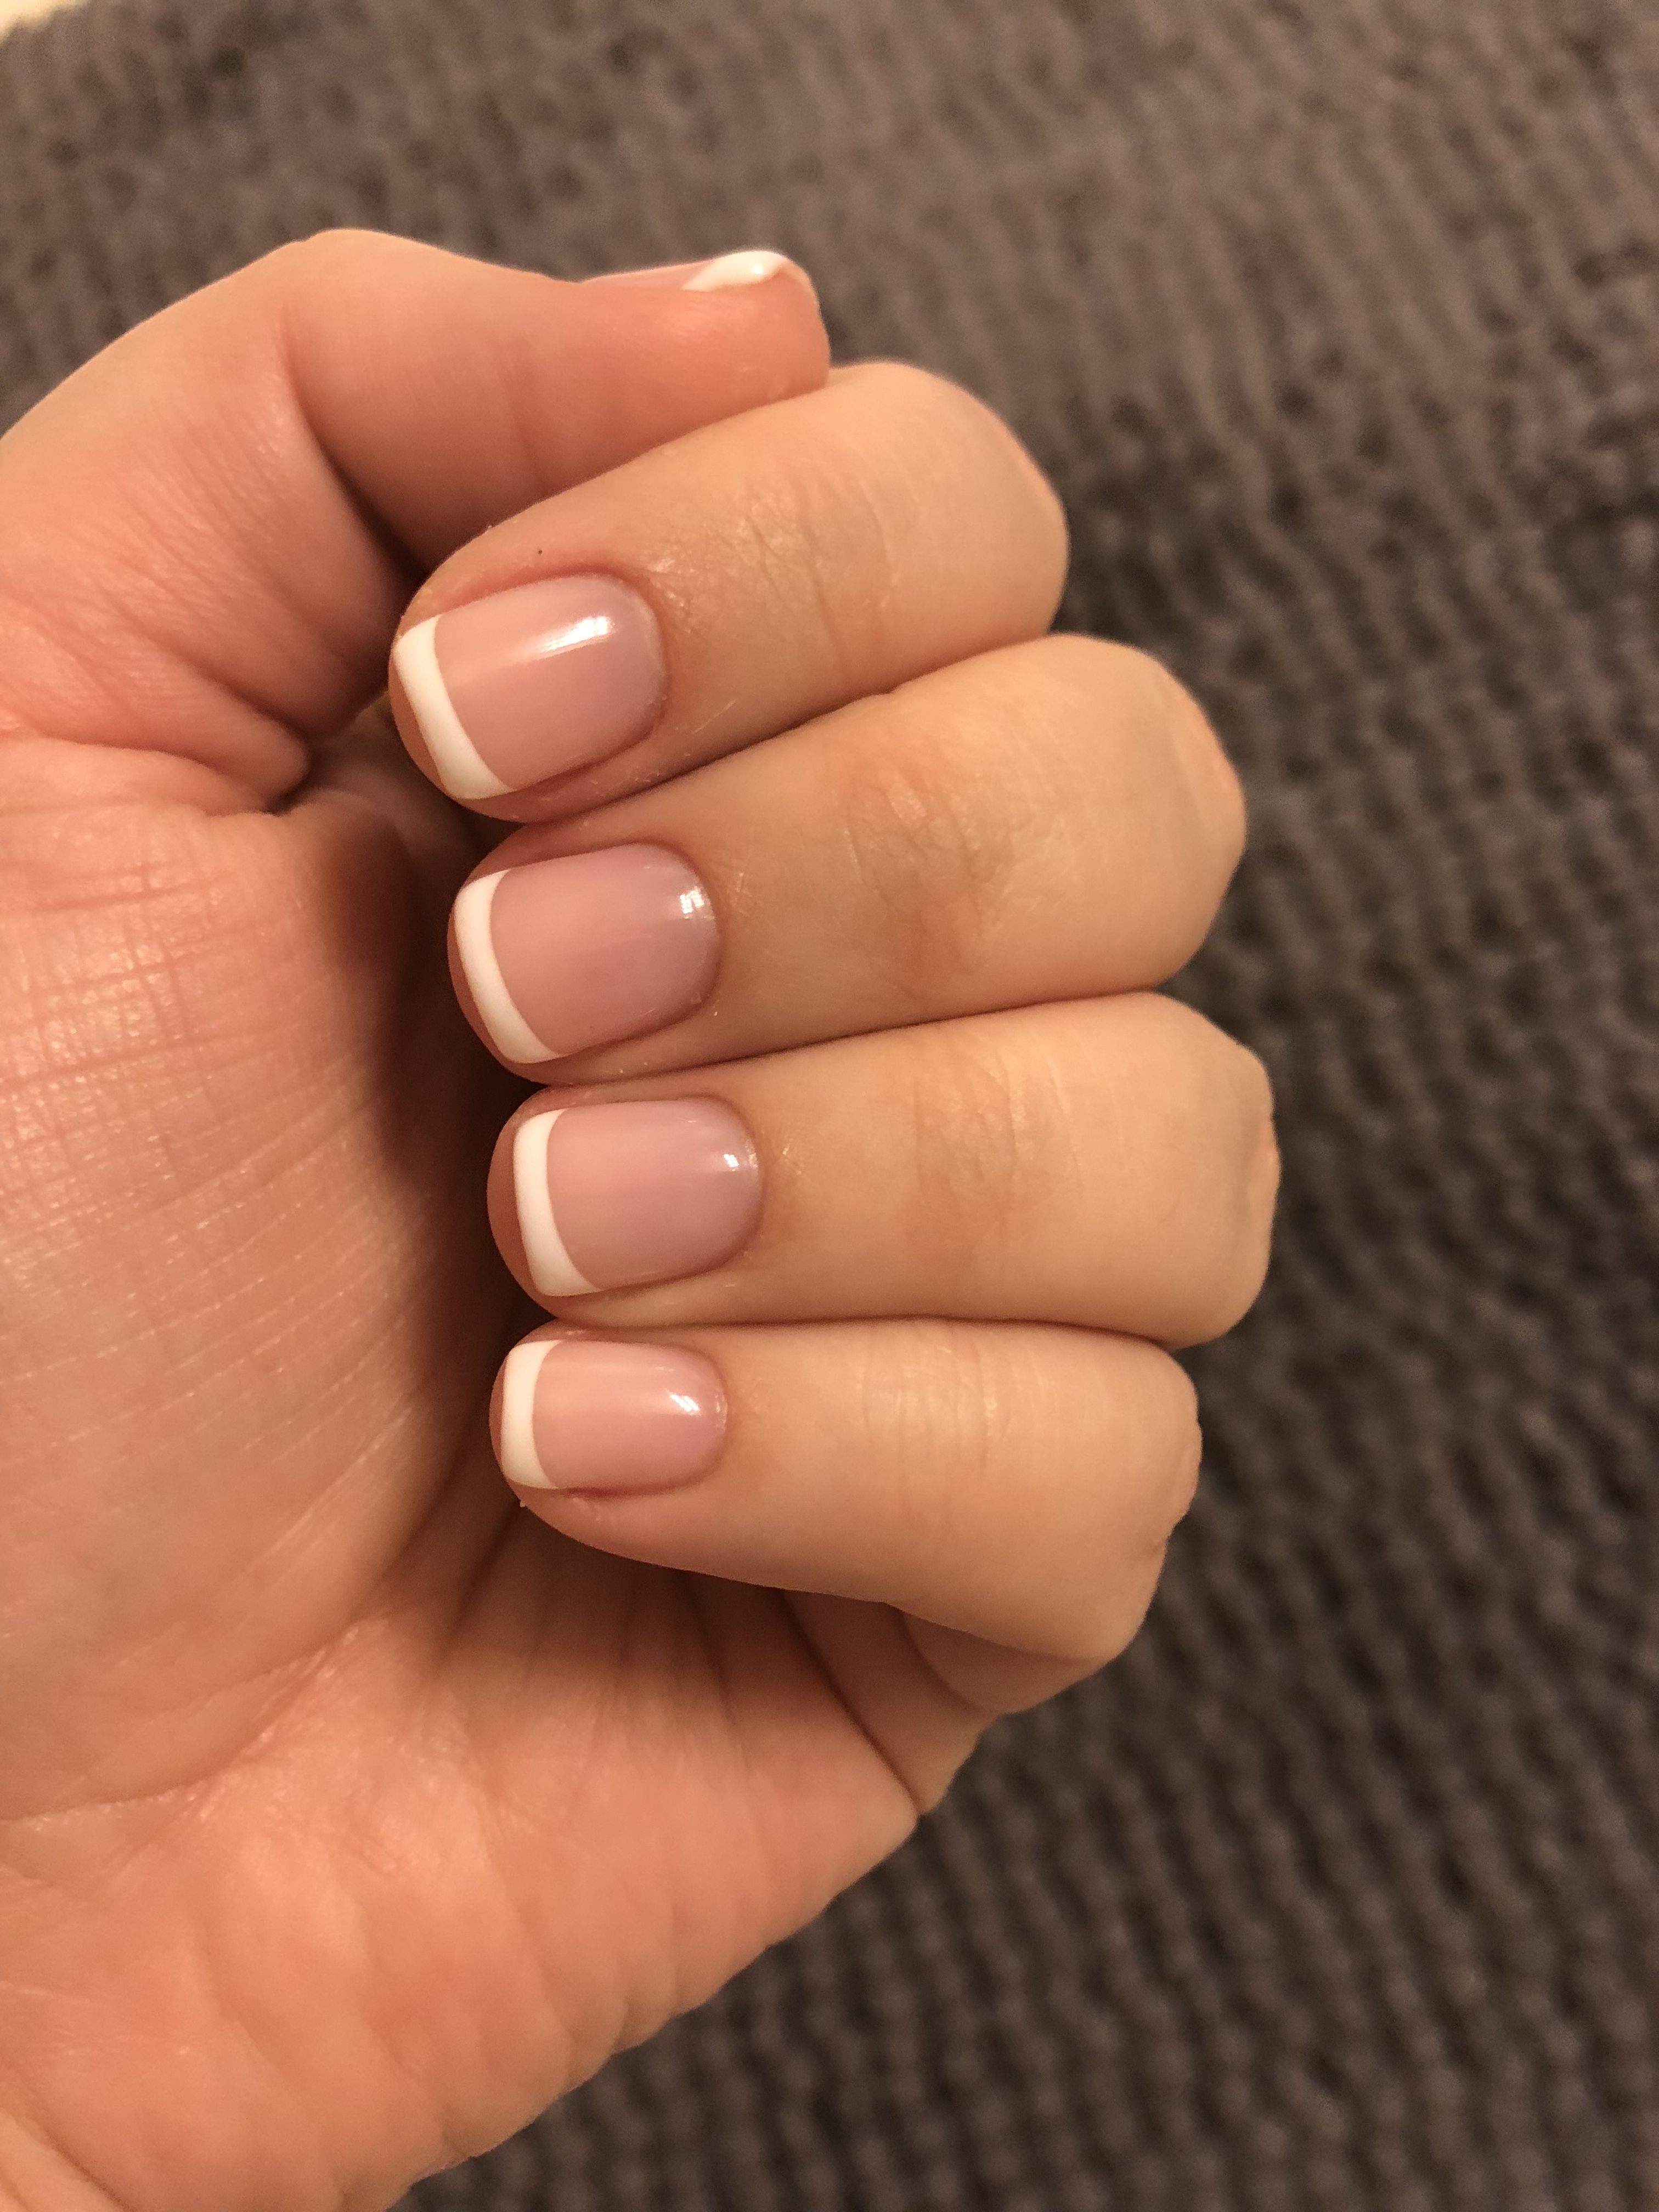 Gel French manicure nails | Nails | Pinterest | Gel french manicure ...